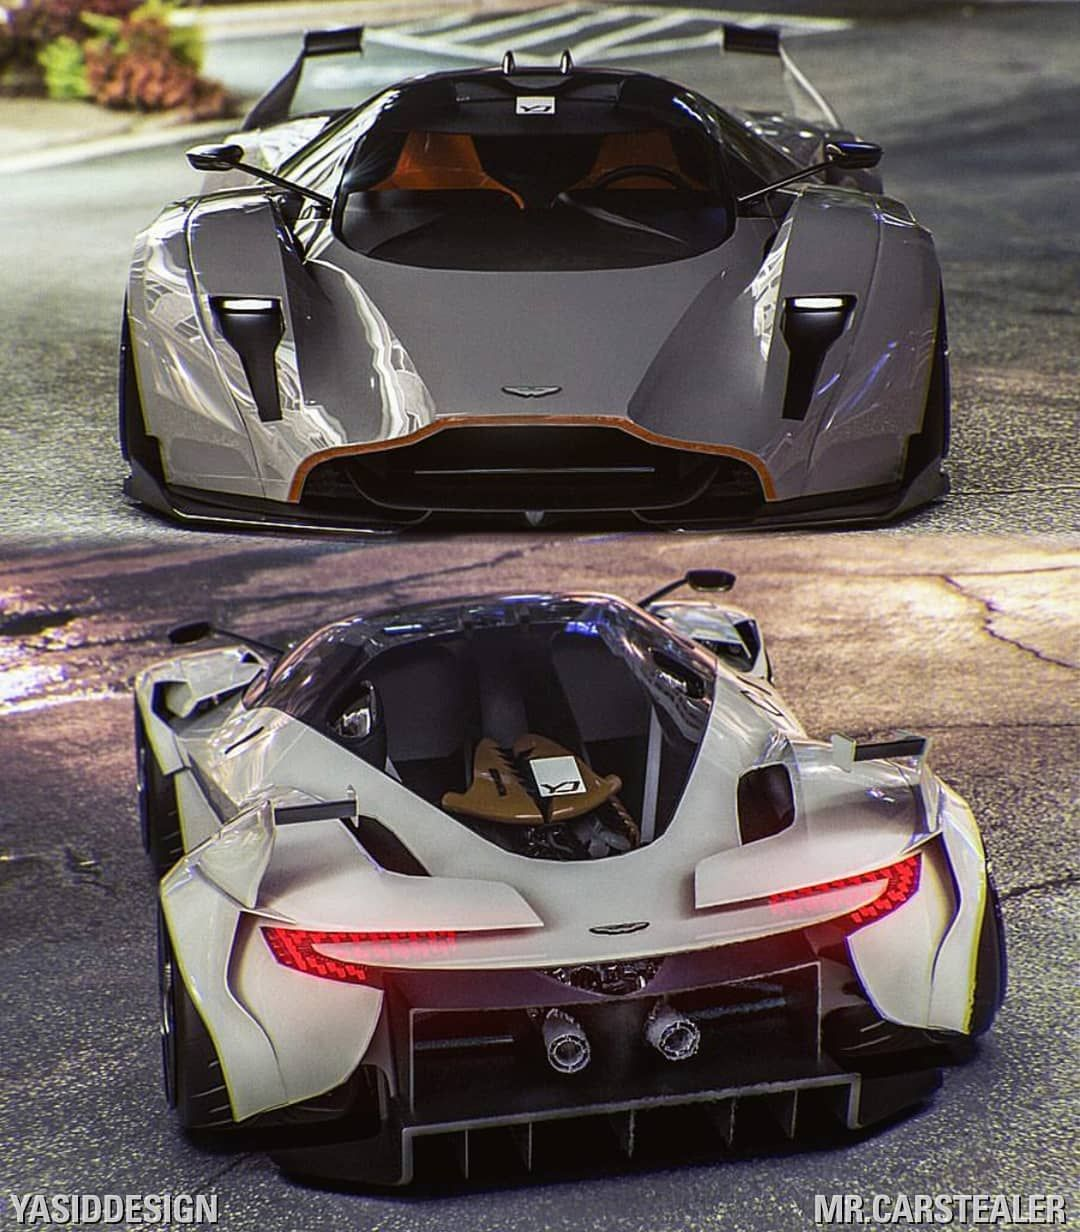 Name The Car Check Out Our Spring Sale Link In Bio Desig Sports Car Brands Futuristic Cars Car